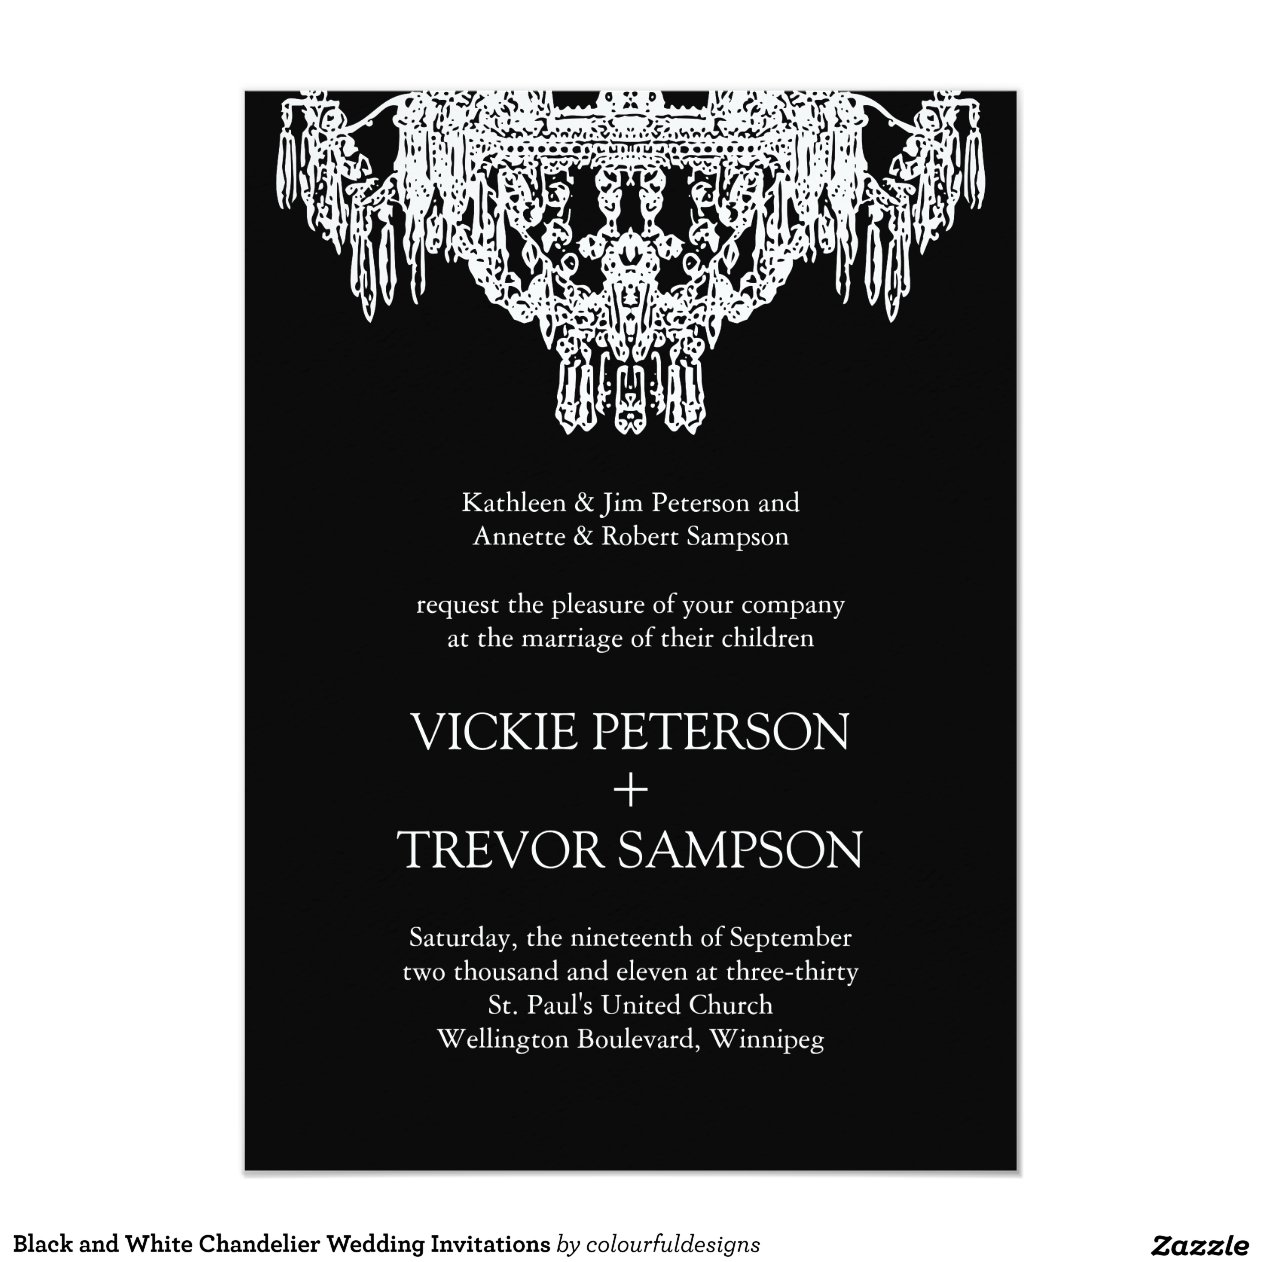 black and white wedding invitations black and white chandelier wedding invitations 1826